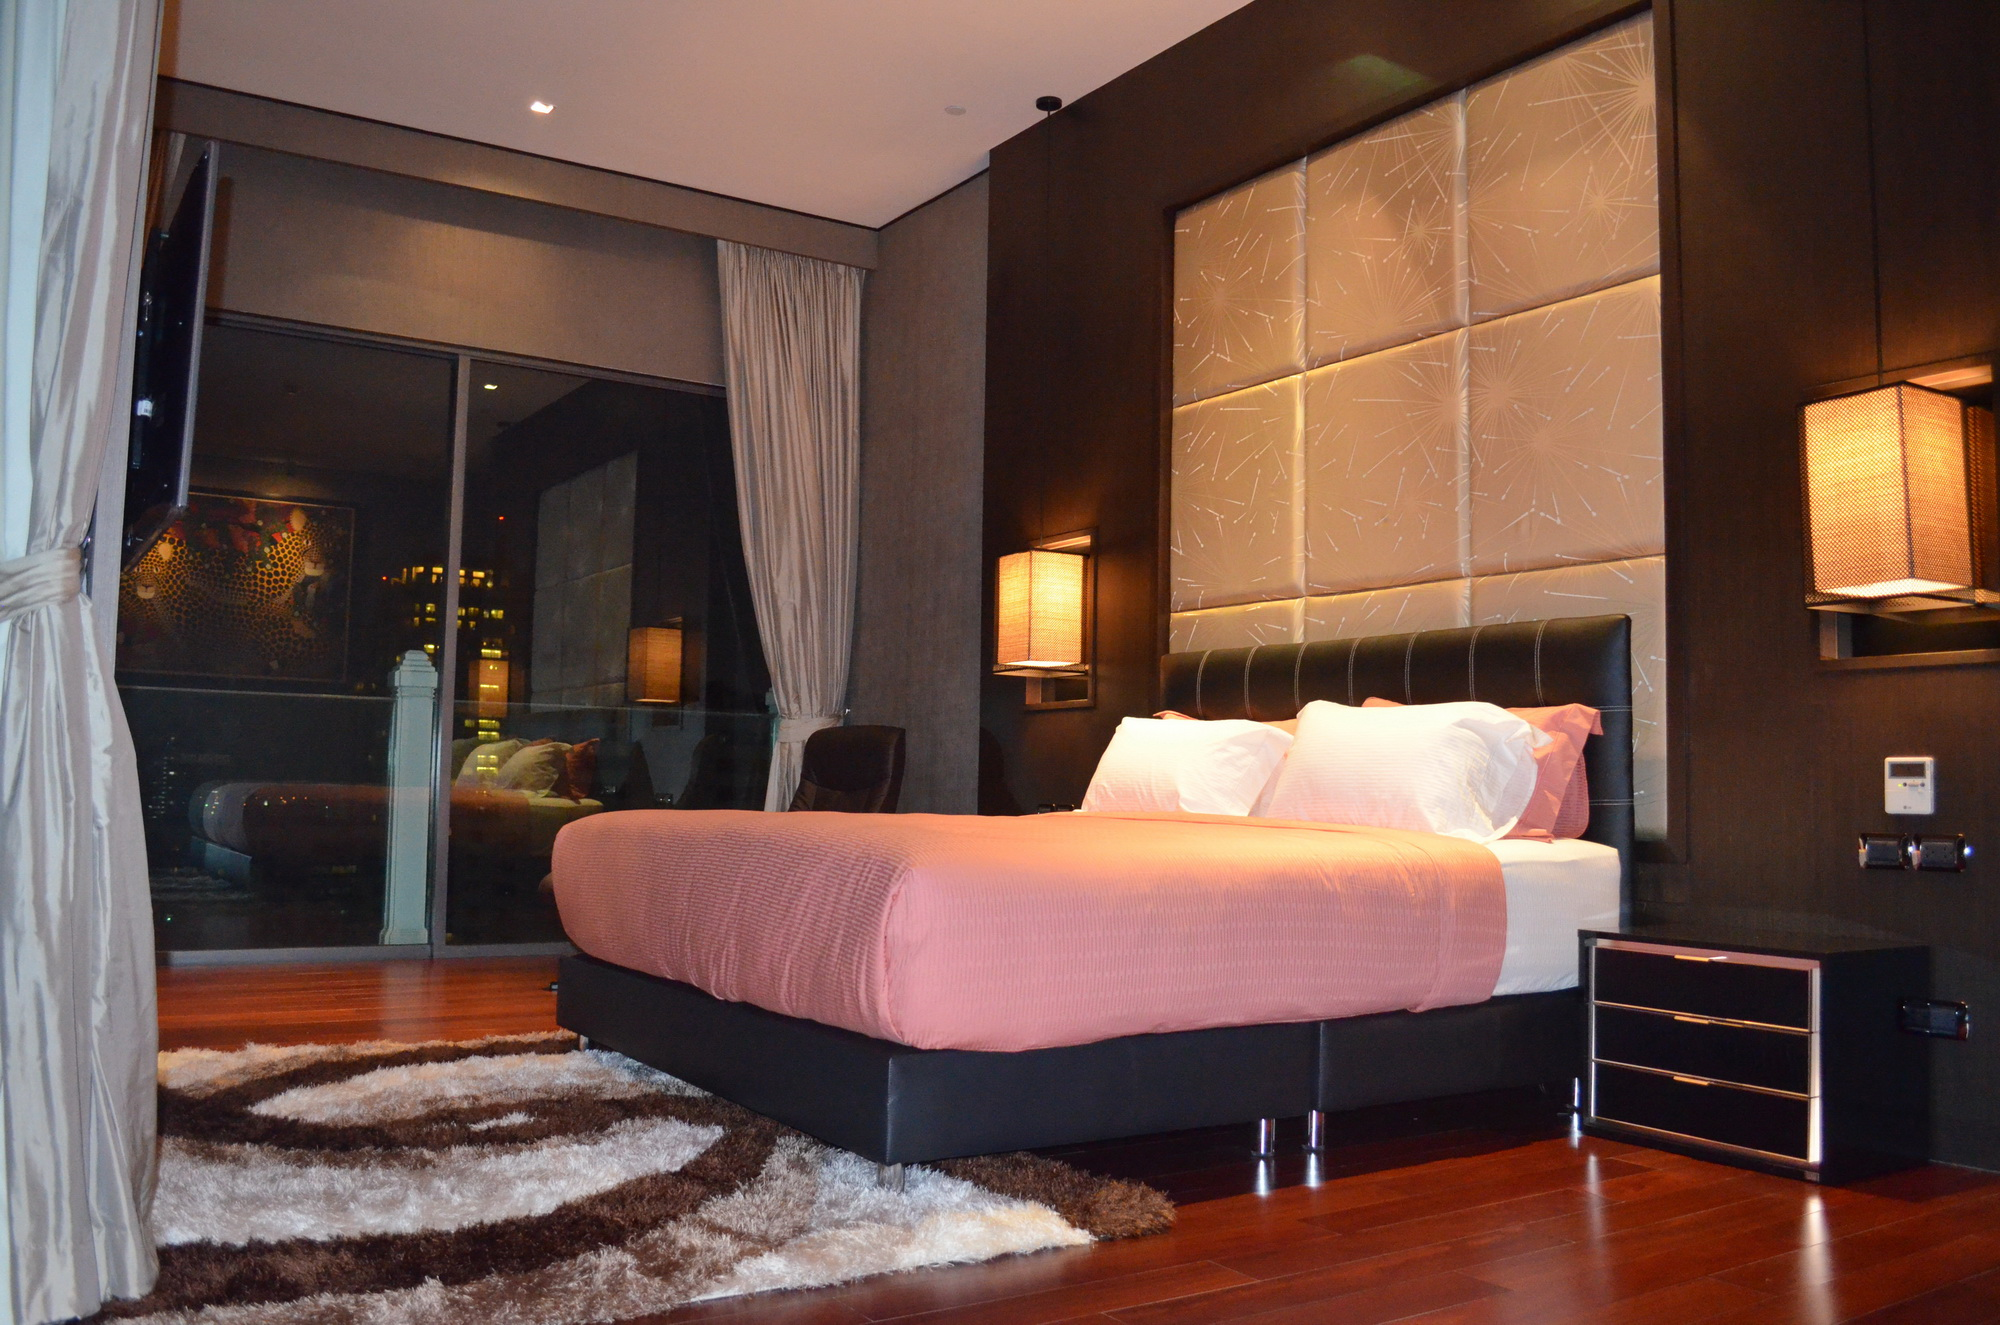 VisionQuest Thailand Property Agency's Phrom Phong 4 bedrooms 5 bathrooms, privet pool + balcony 480 Sq.m 4